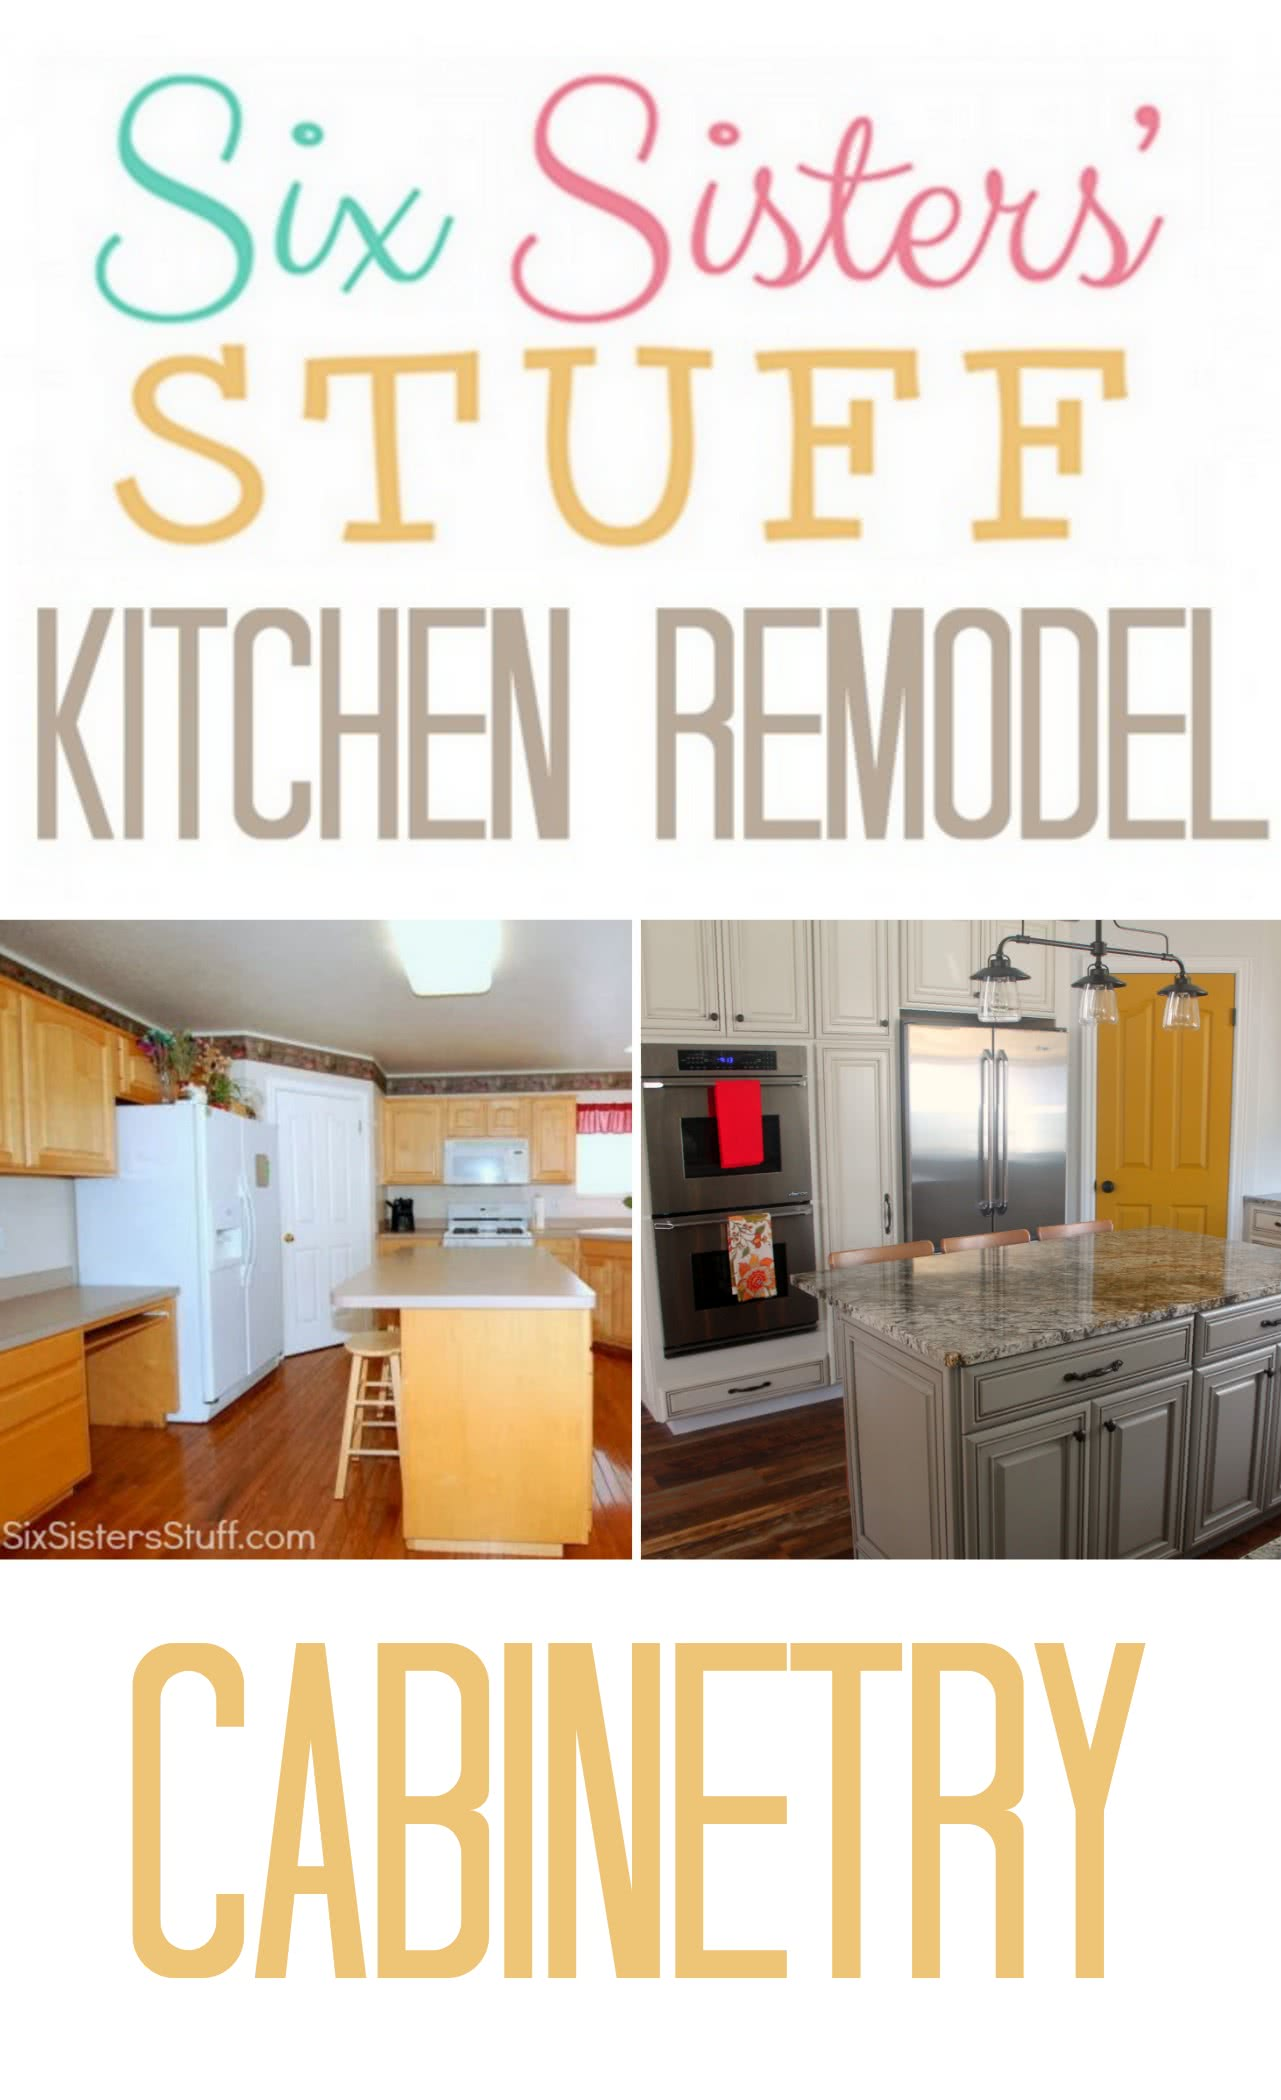 kitchen-remodel-cabinetry.jpg